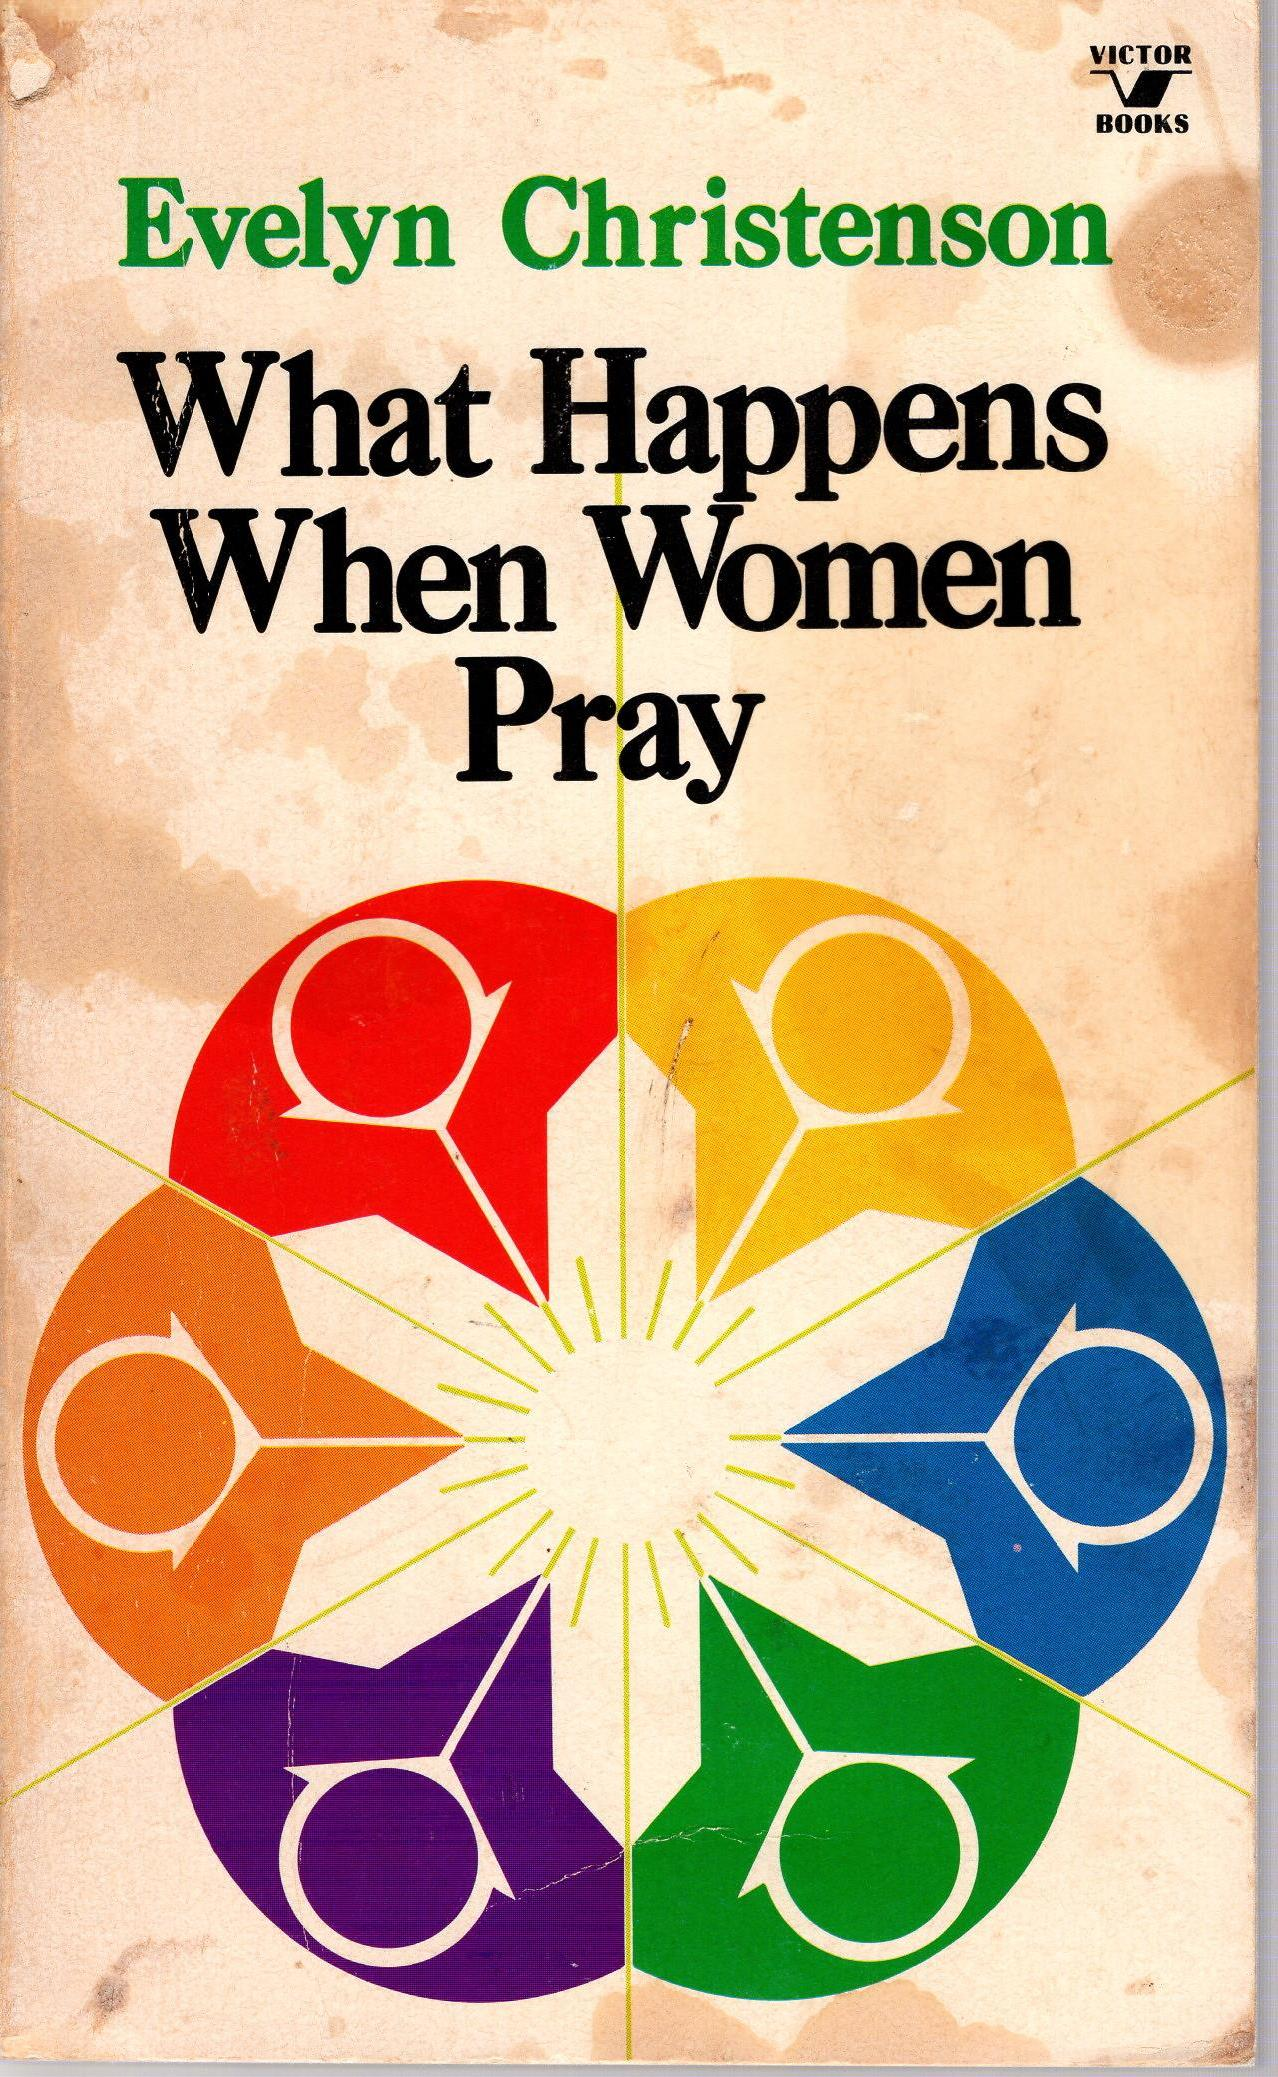 Image for WHAT HAPPENS WHEN WOMEN PRAY